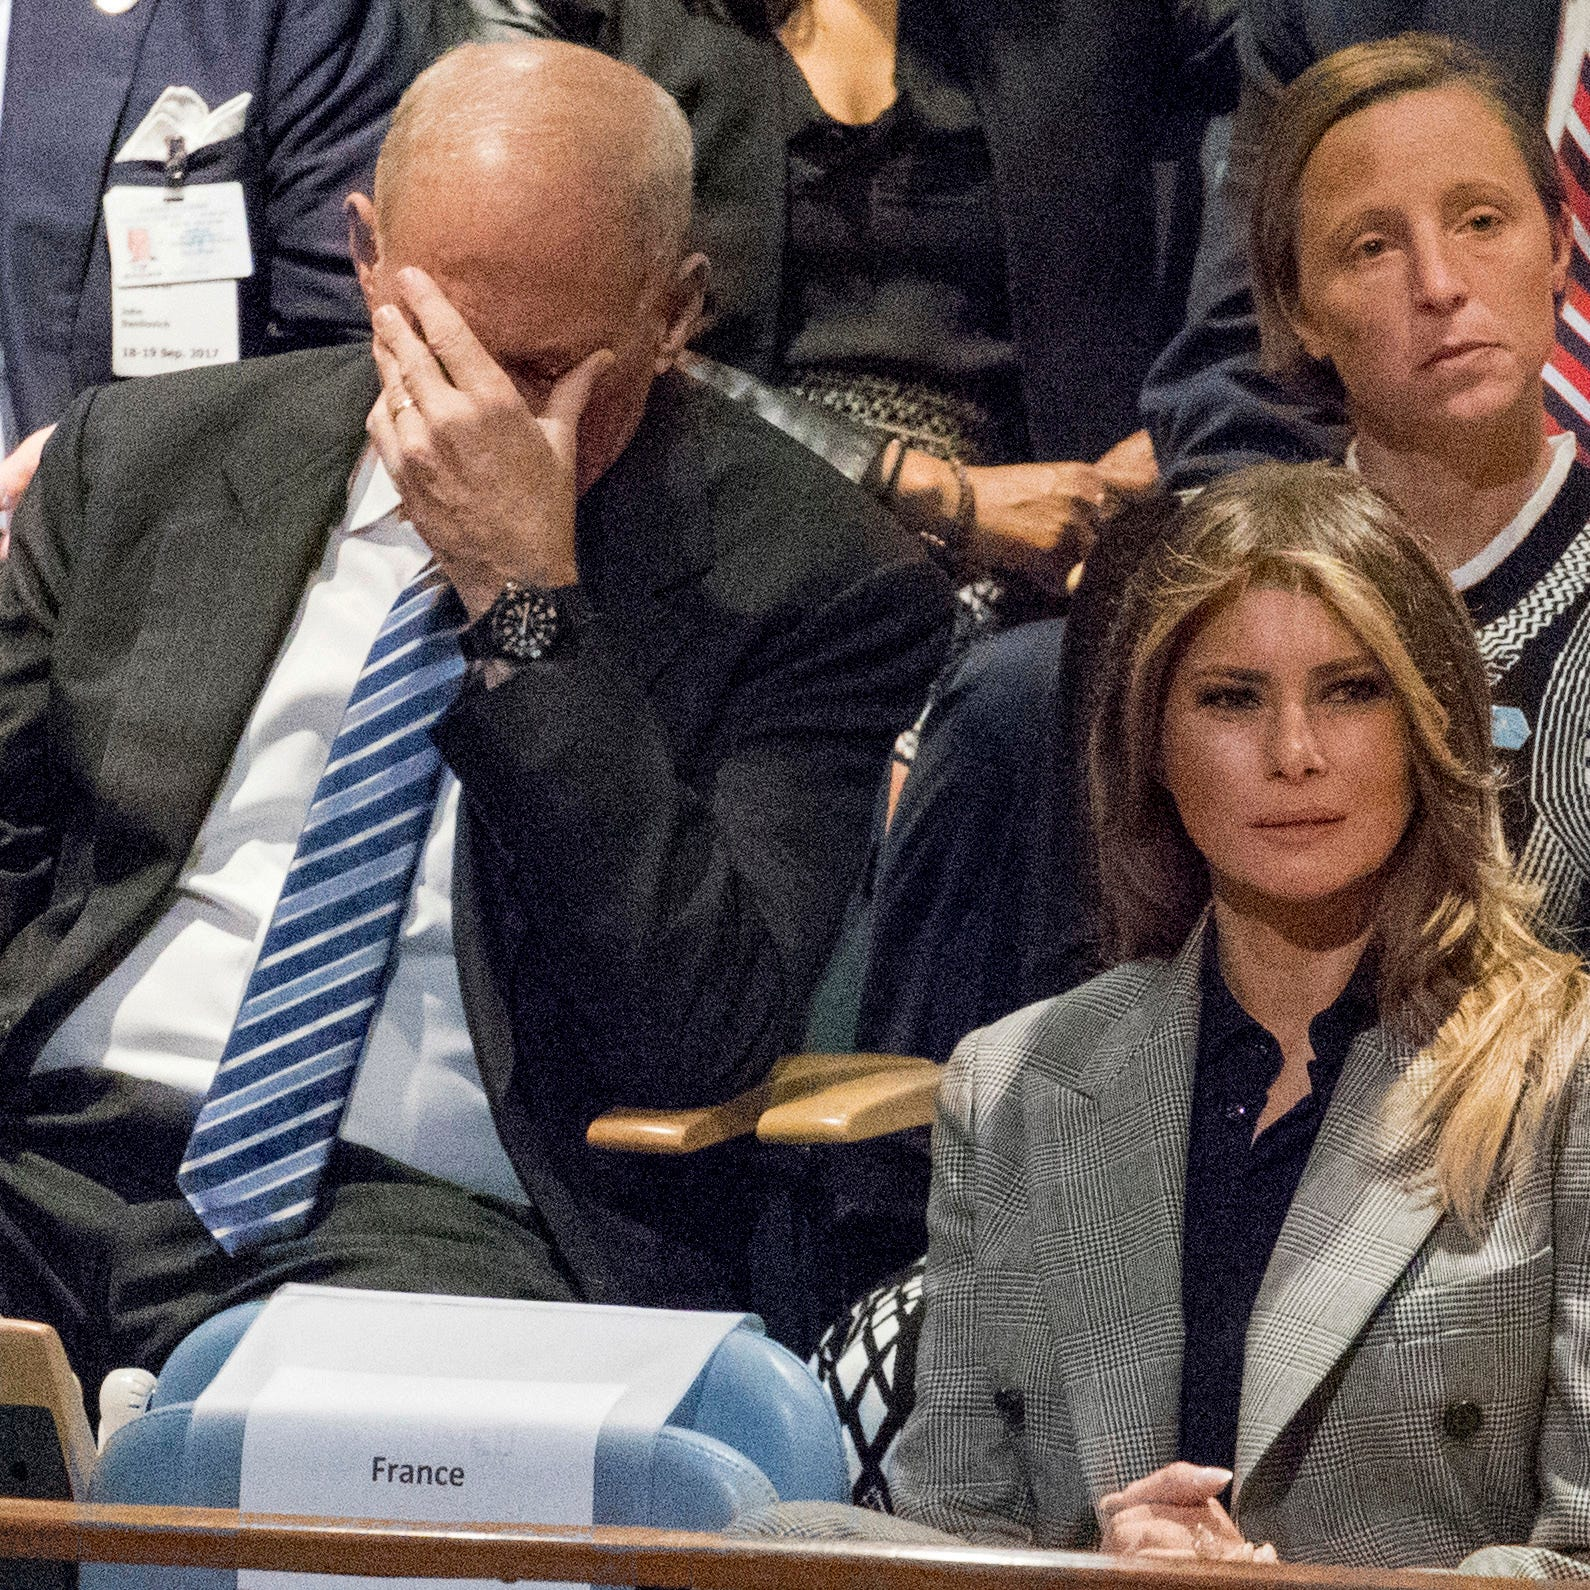 White House Chief of Staff John Kelly, left, reacts as he and first lady Melania Trump listen to U.S. President Donald Trump speak during at the United Nations General Assembly at U.N. headquarters in Sept. 2017.